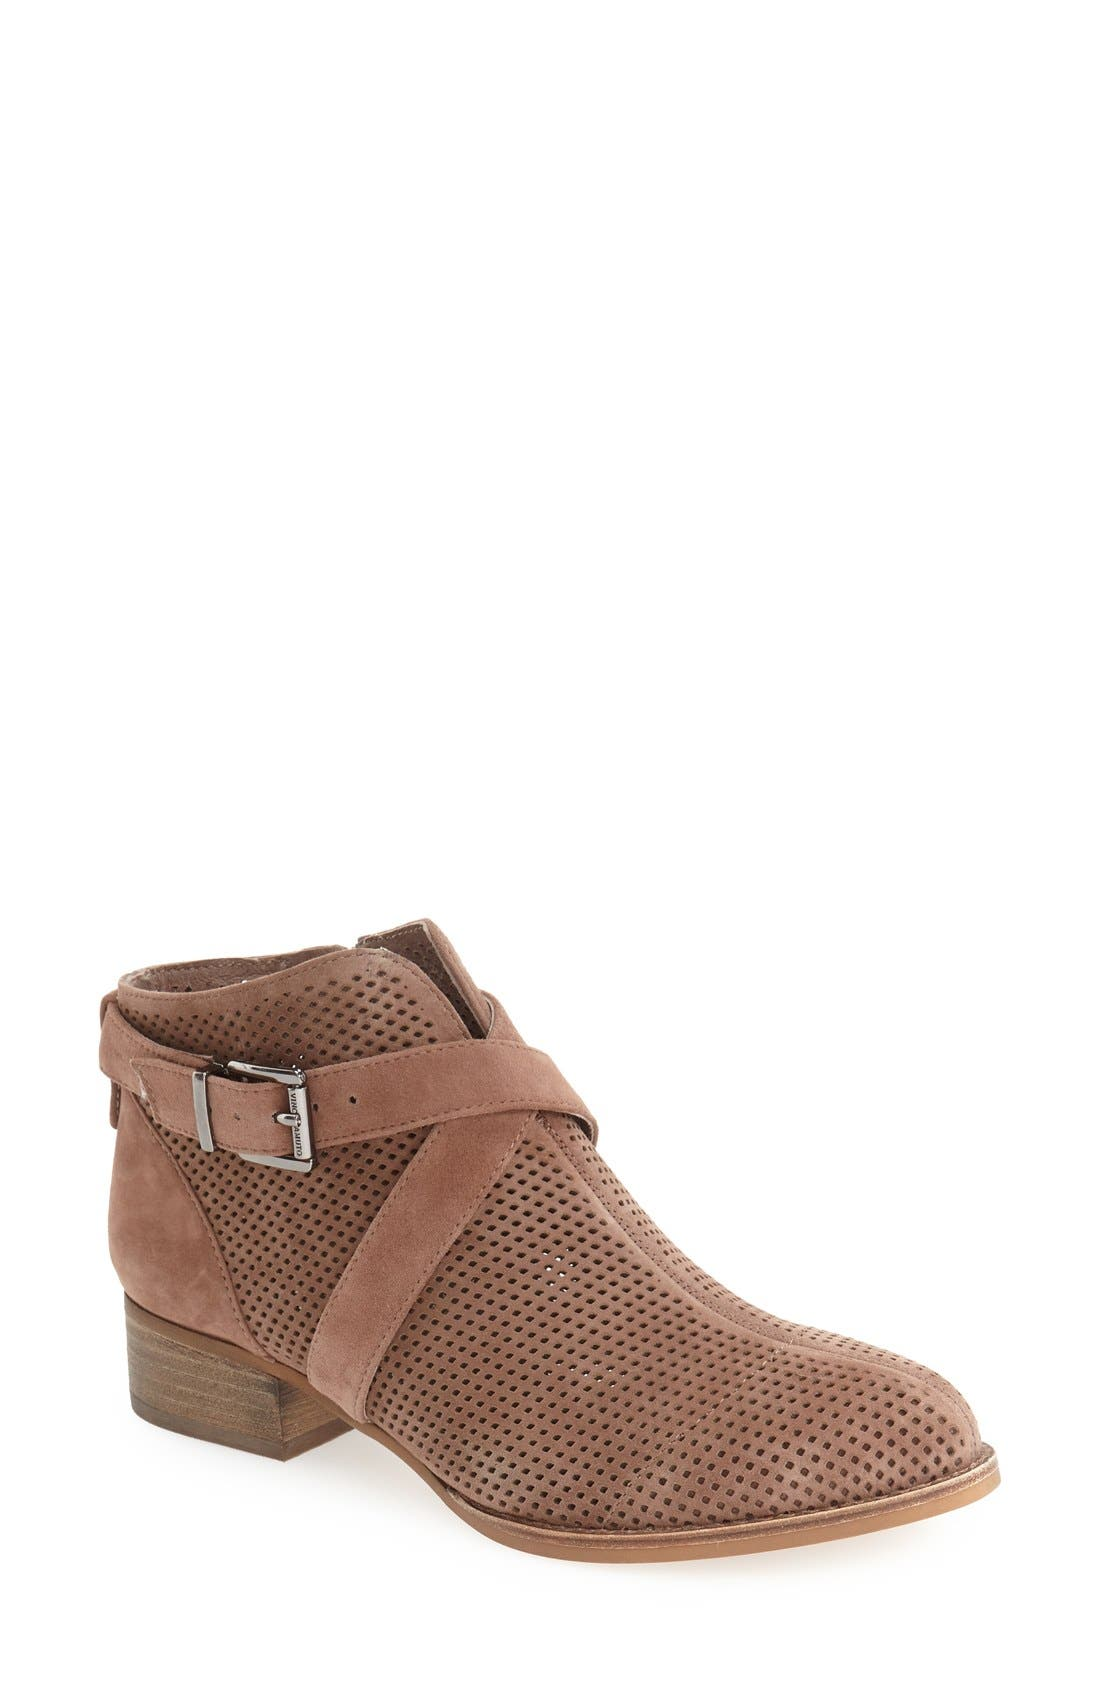 Main Image - Vince Camuto 'Casha' Perforated Bootie (Women)